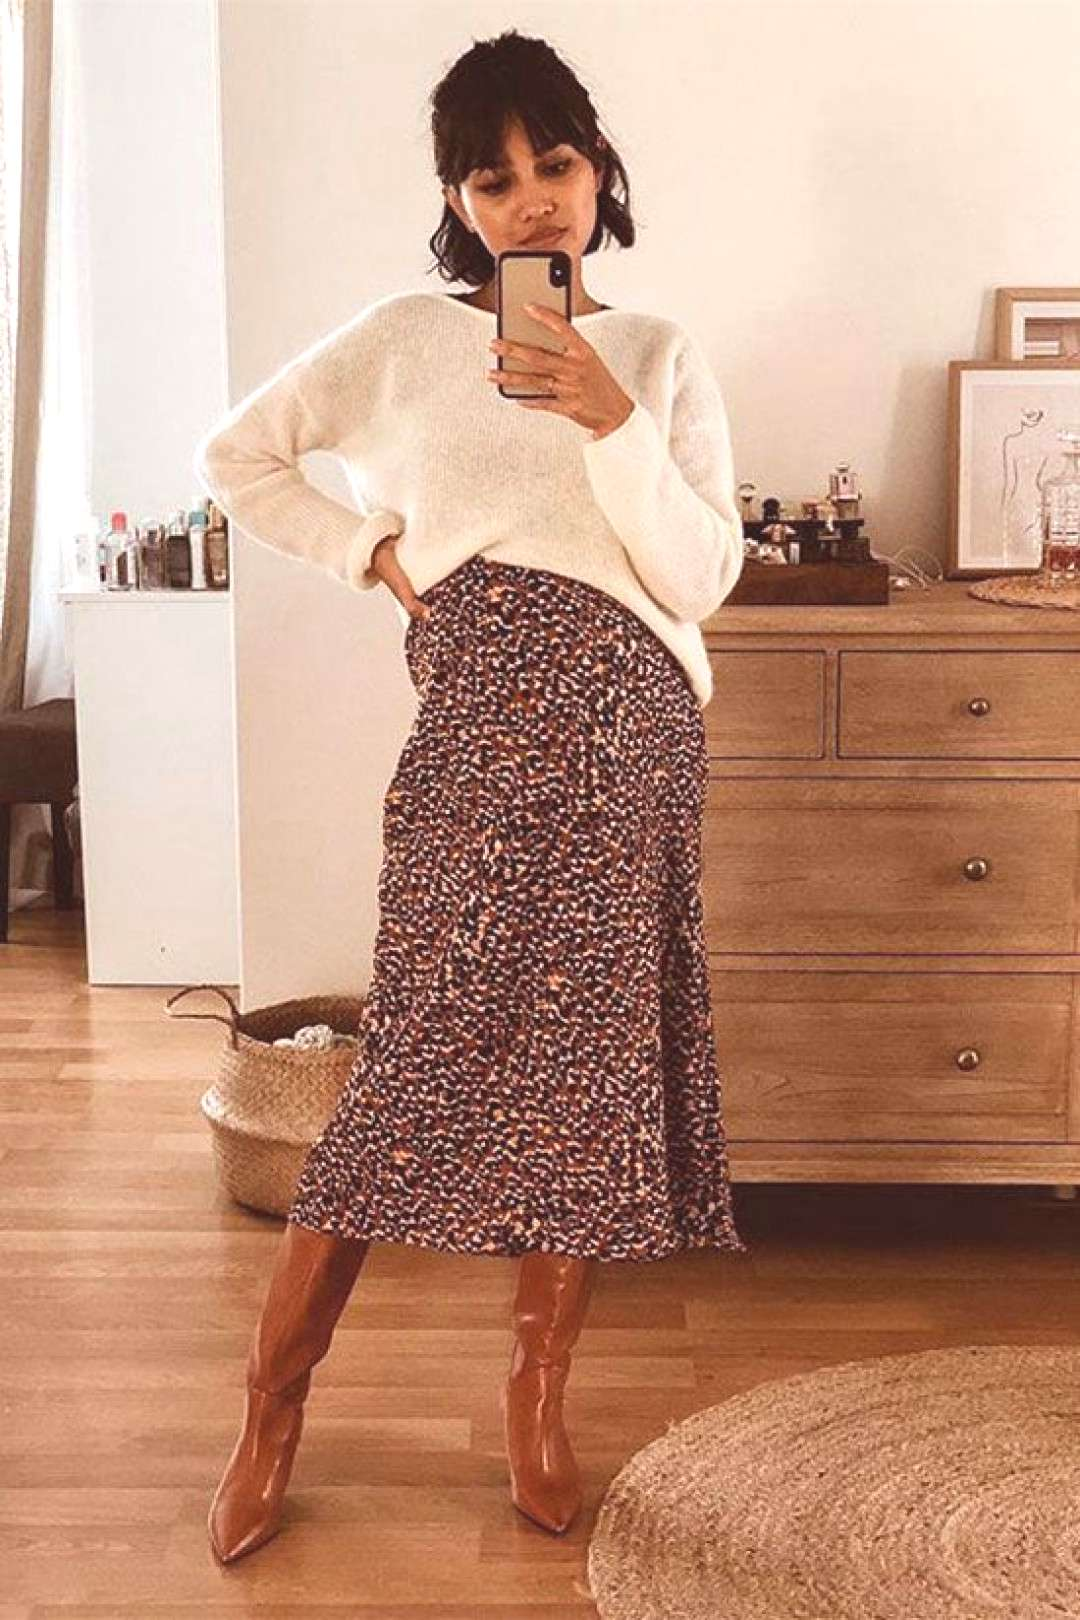 6 Reasons To Love The Midi Skirt And Boots Combo Fashion Blogger Sherlock Diary wearing a white